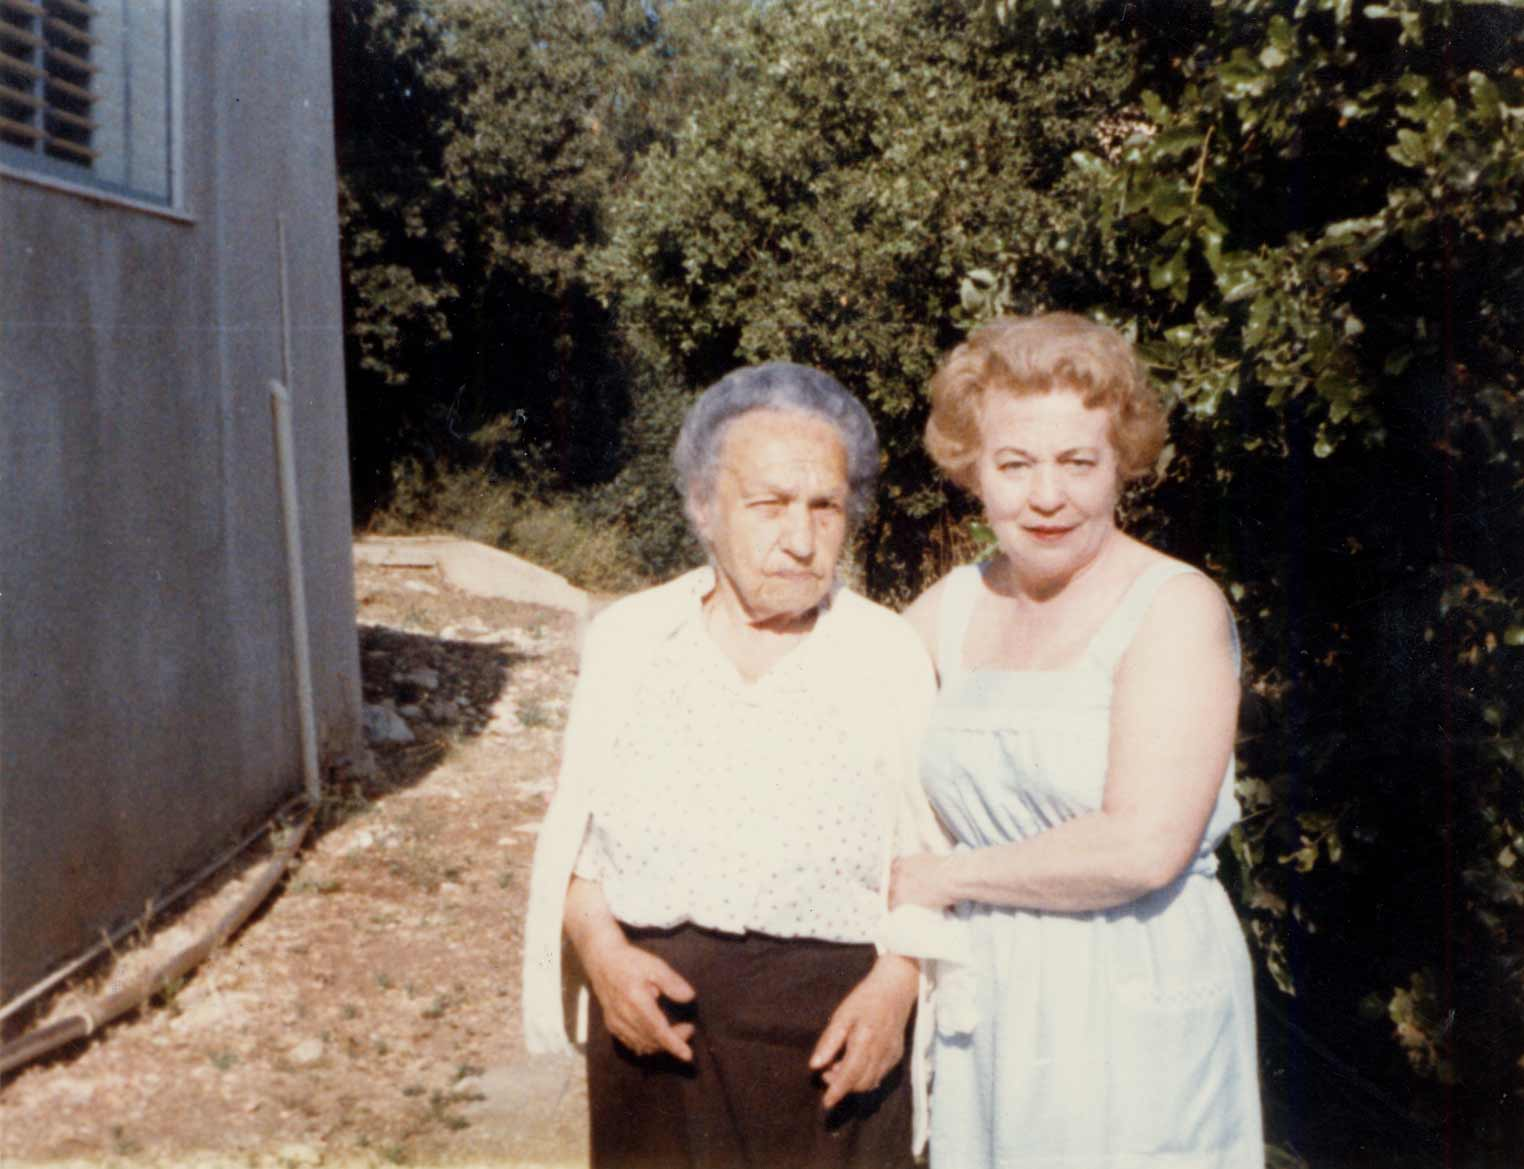 Photograph of Cyla Dworkind, who donated the tag, and her aunt Rosa Pliskin-Sokolinski in Israel in 1984.